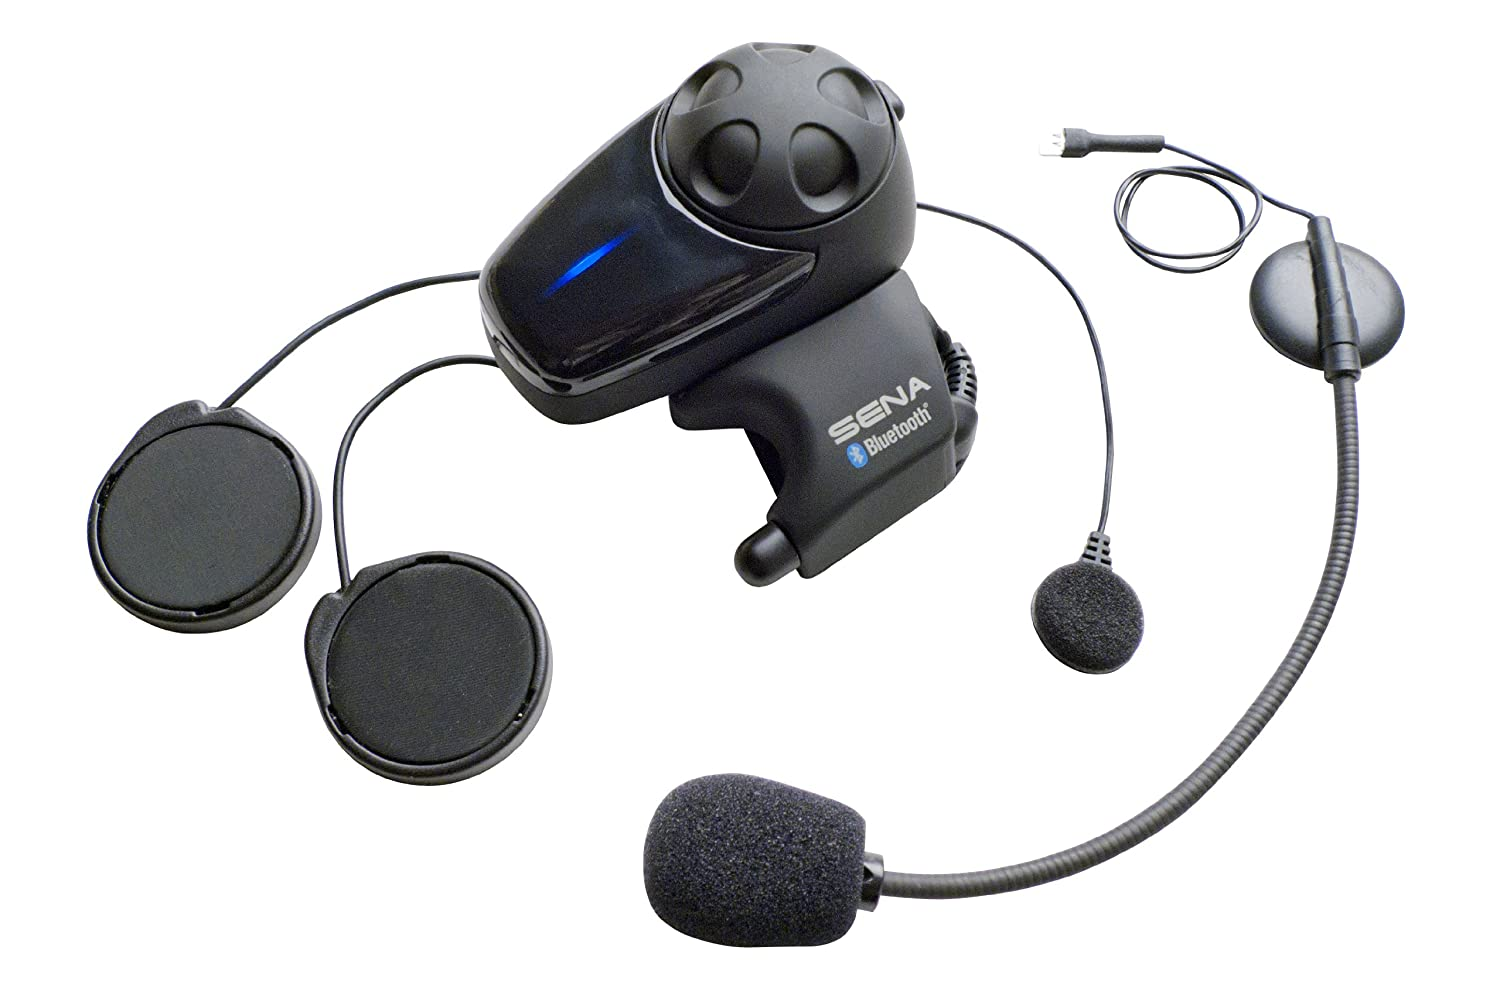 Sena SMH10-11 Motorcycle Bluetooth Headset/Intercom with Universal Microphone Kit Sena Bluetooth